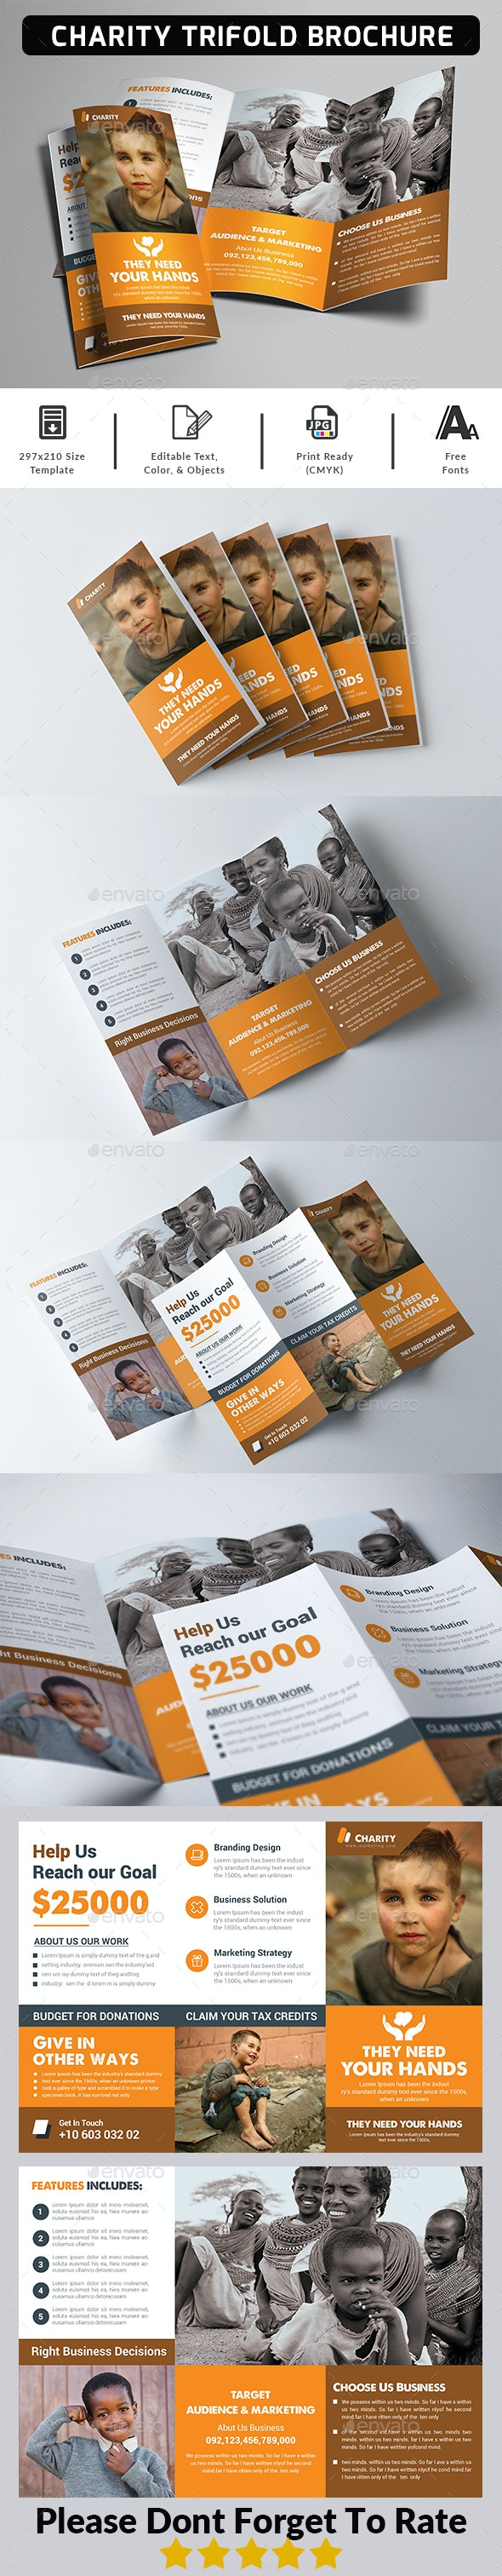 Charity Fundraisers Trifold Brochure - Corporate Brochures